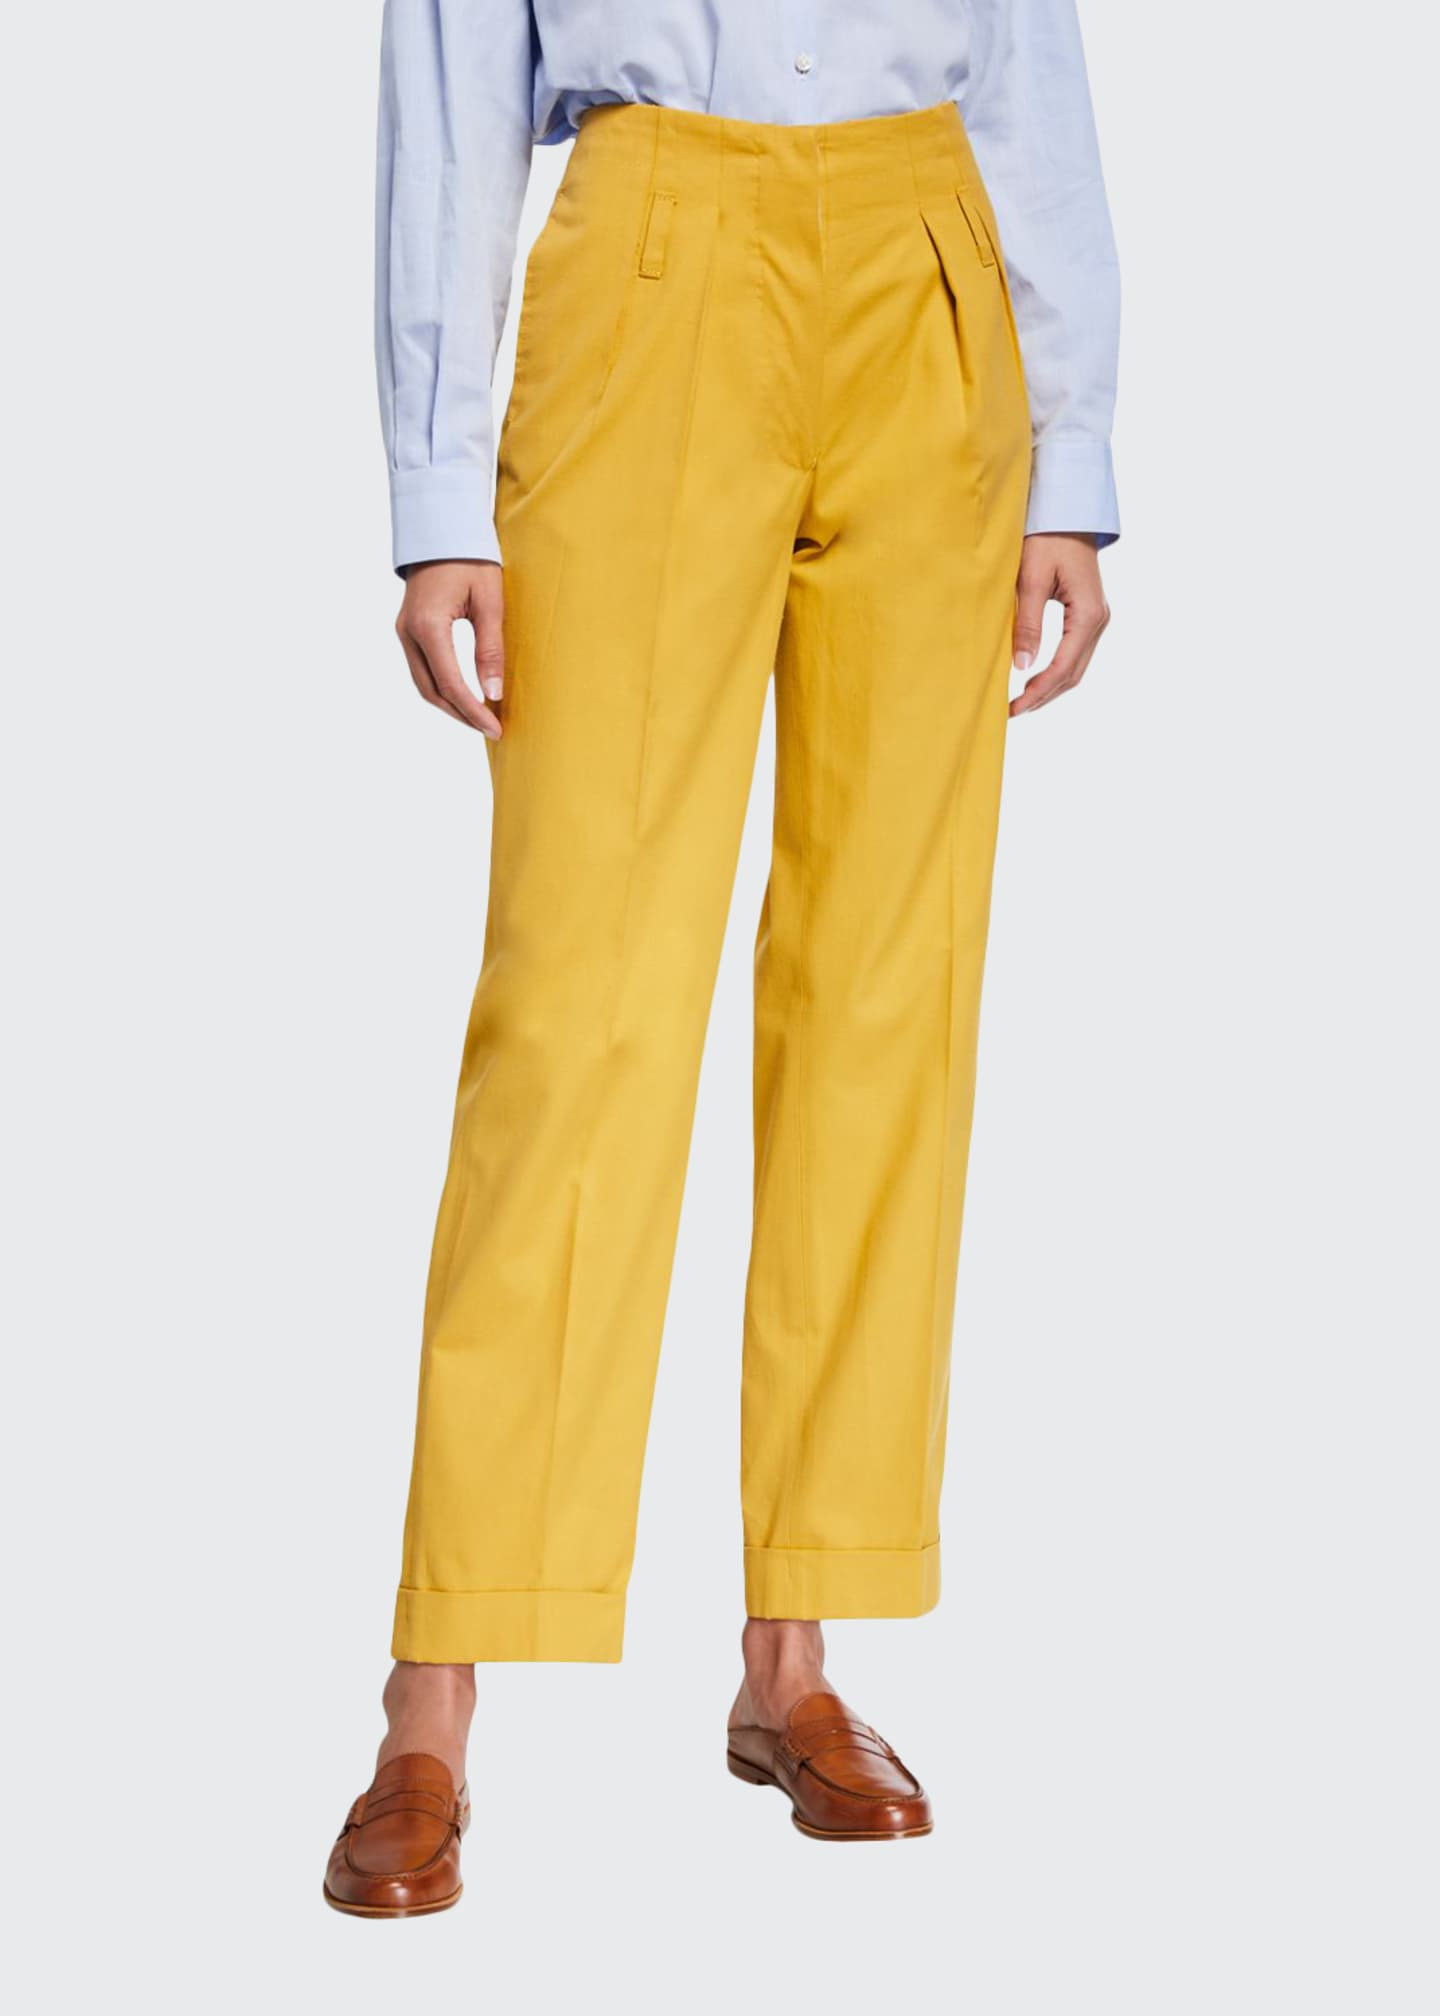 Giuliva Heritage Collection Double-Pinces Tailored Pants